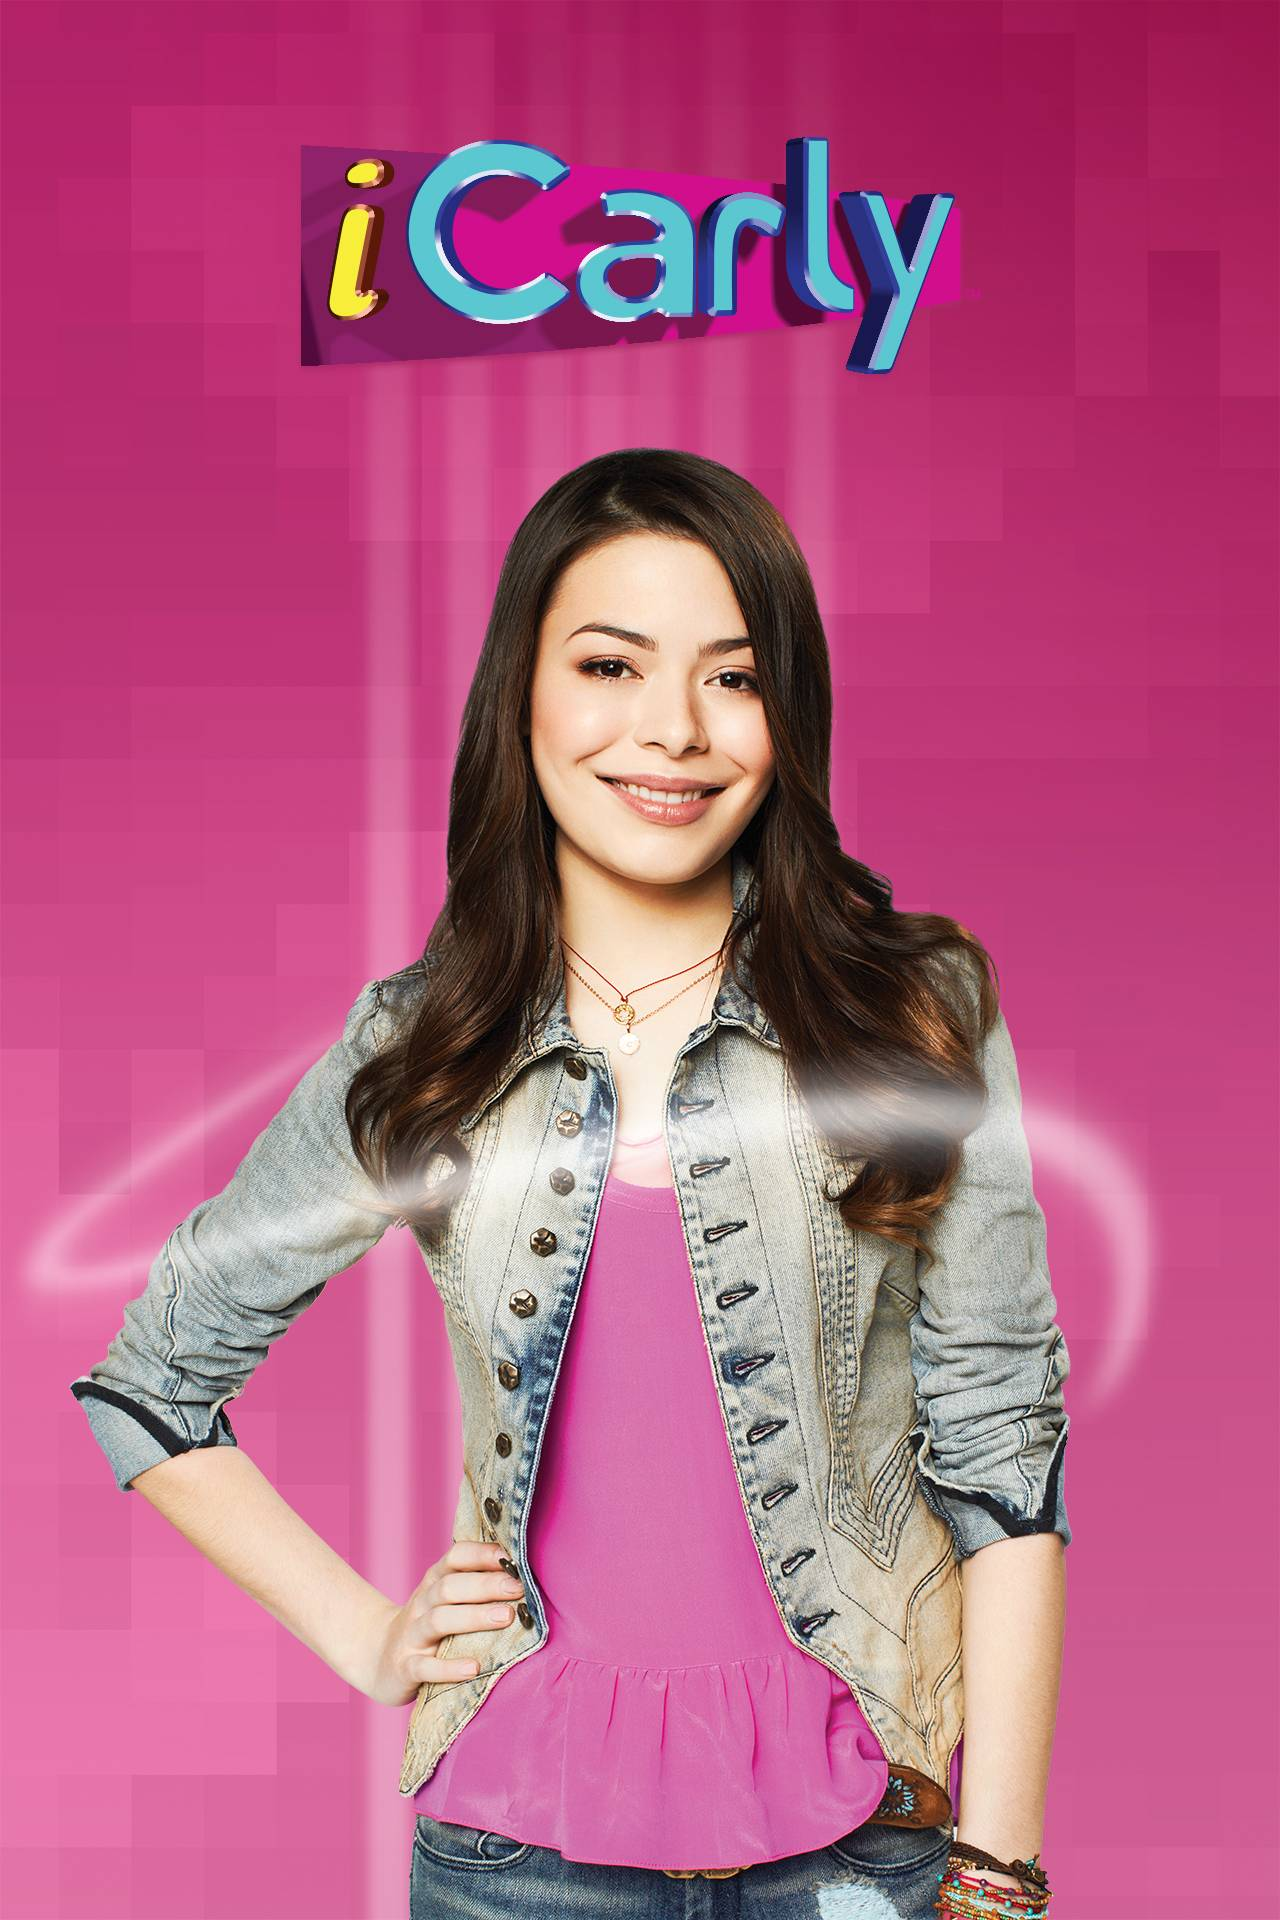 who does freddie end up with in icarly